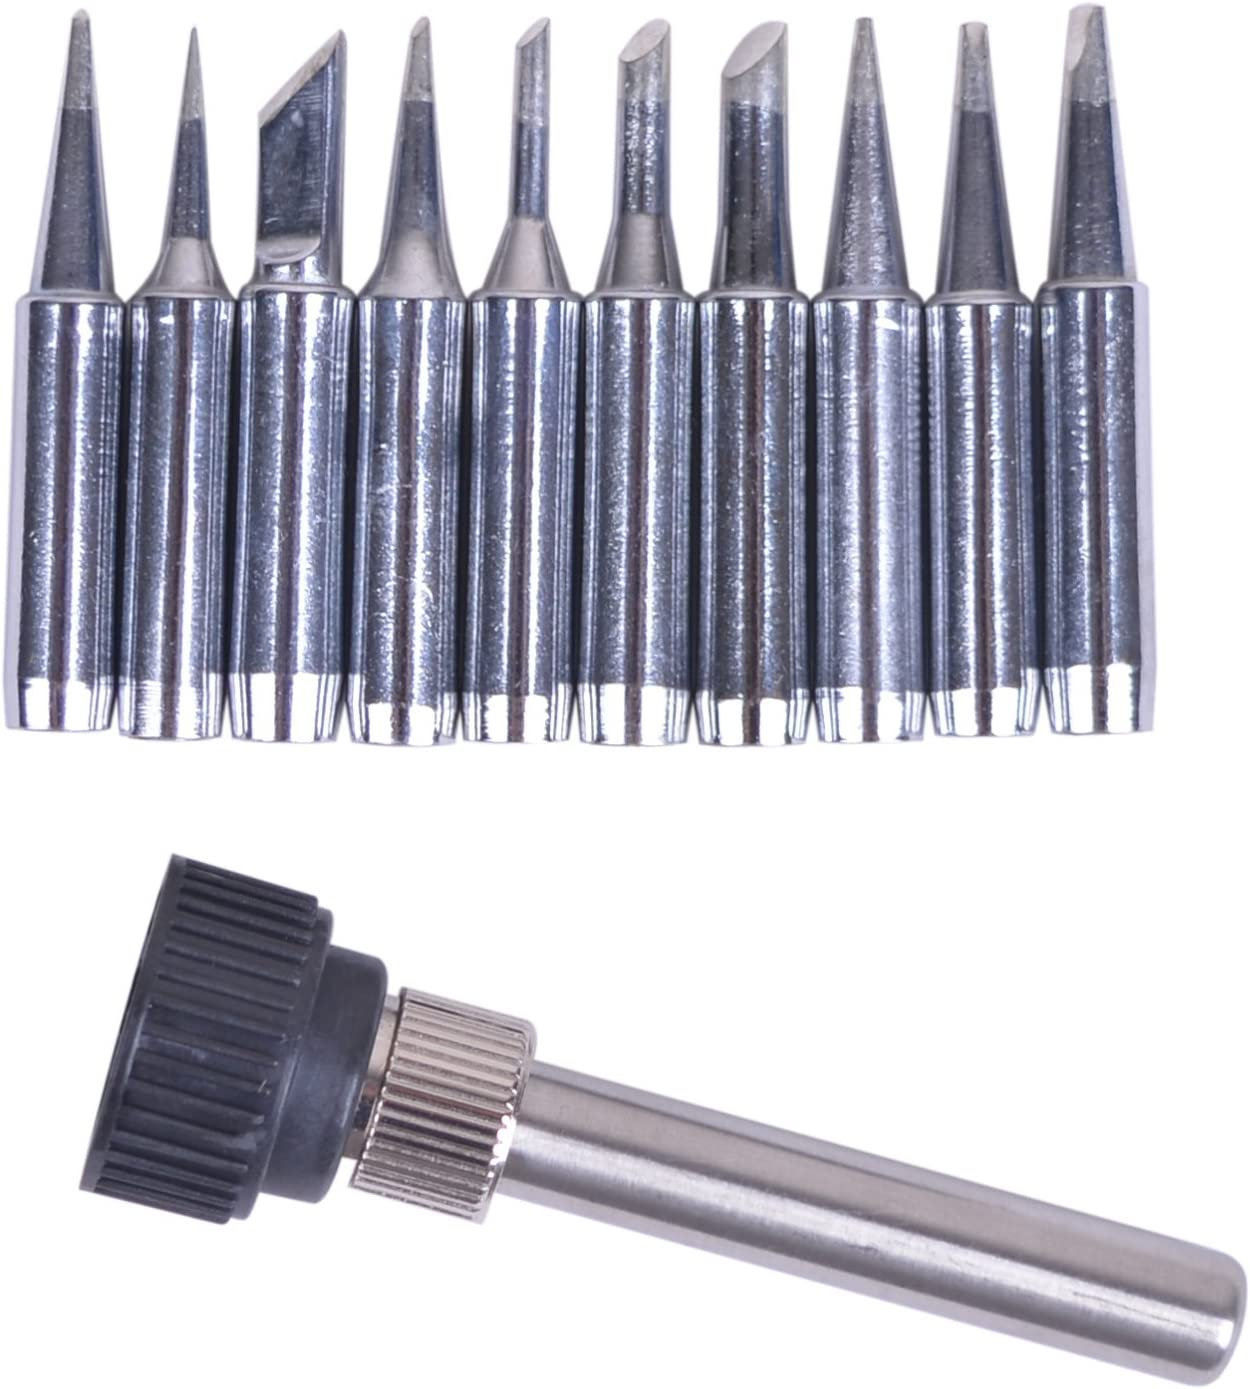 Bleiou 10pcs+Iron Free shipping anywhere in the nation casing lot Lead-free All items free shipping Tip F Solder 900M-T Iron